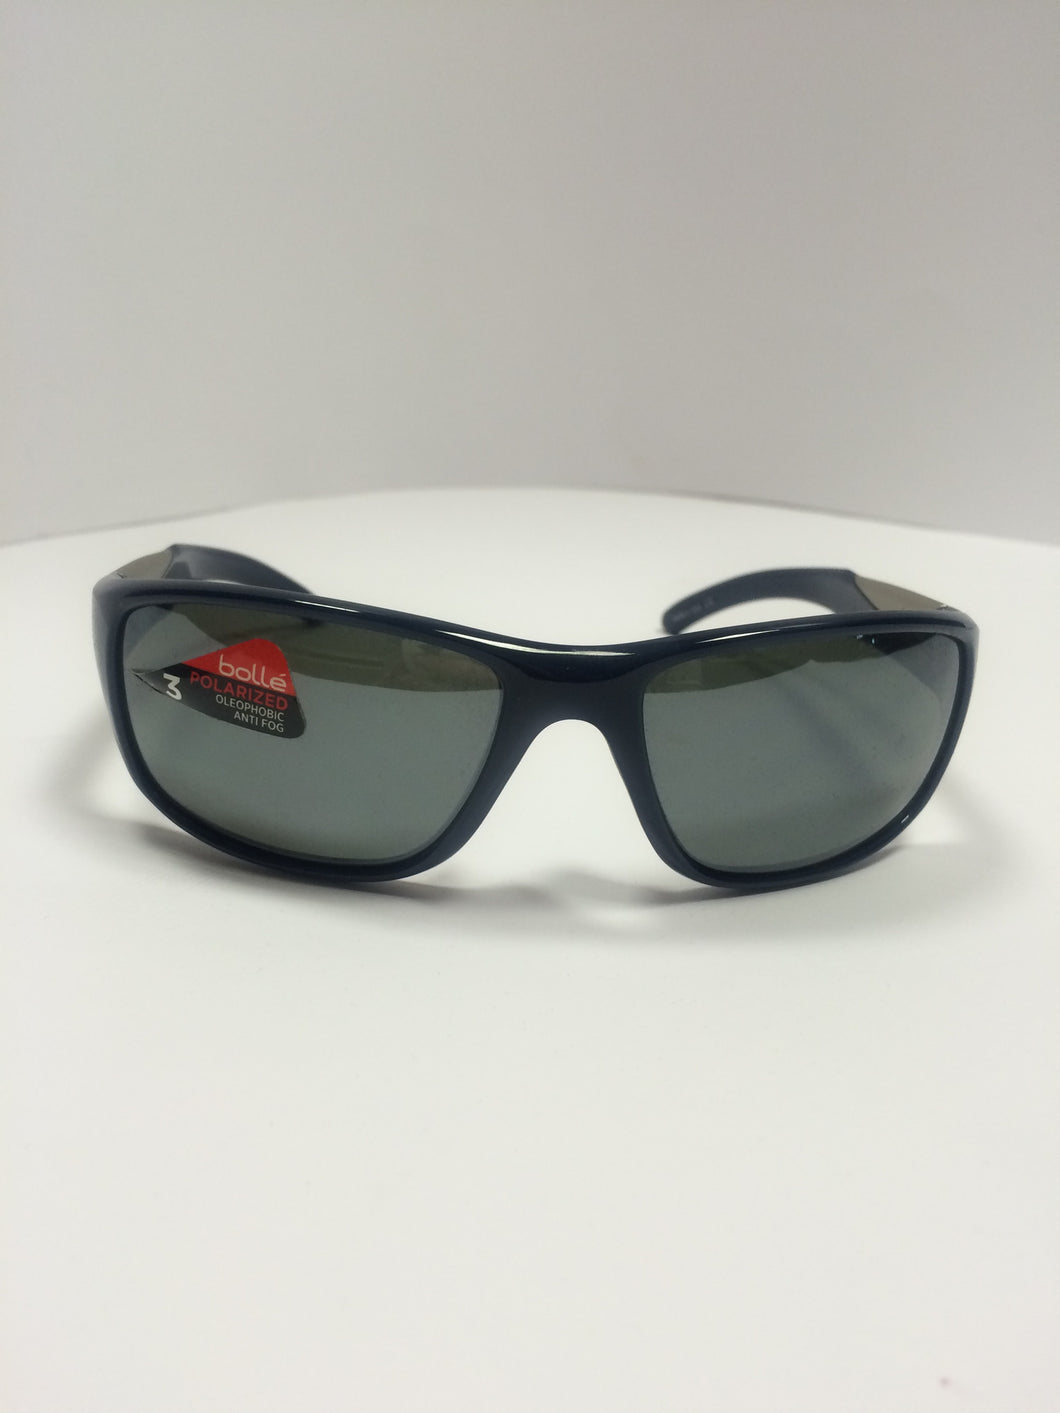 Bolle vibe Designers sunglasses, front